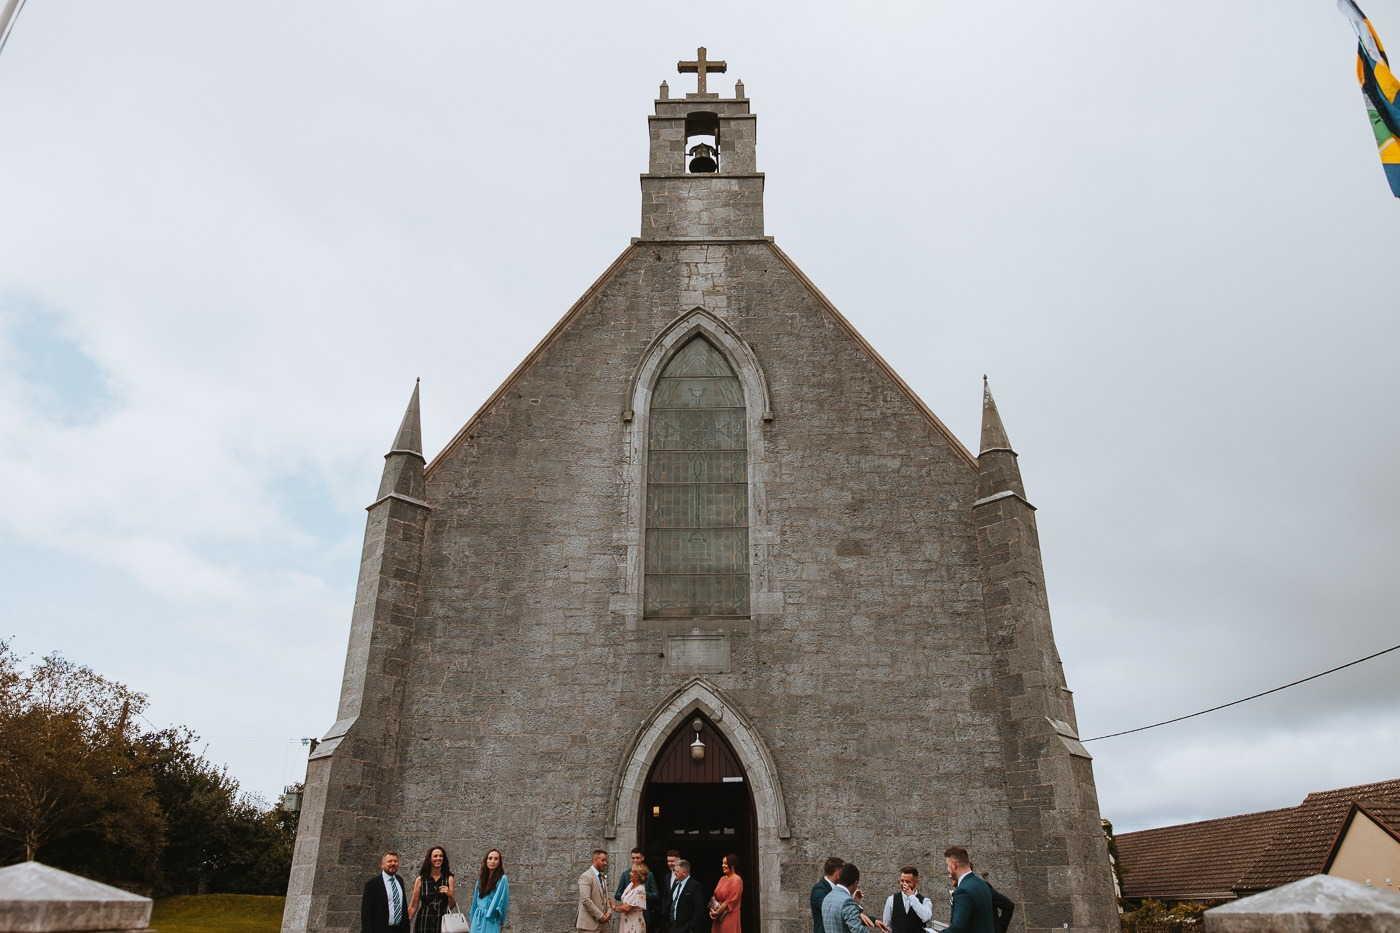 A group of people standing in front of a church